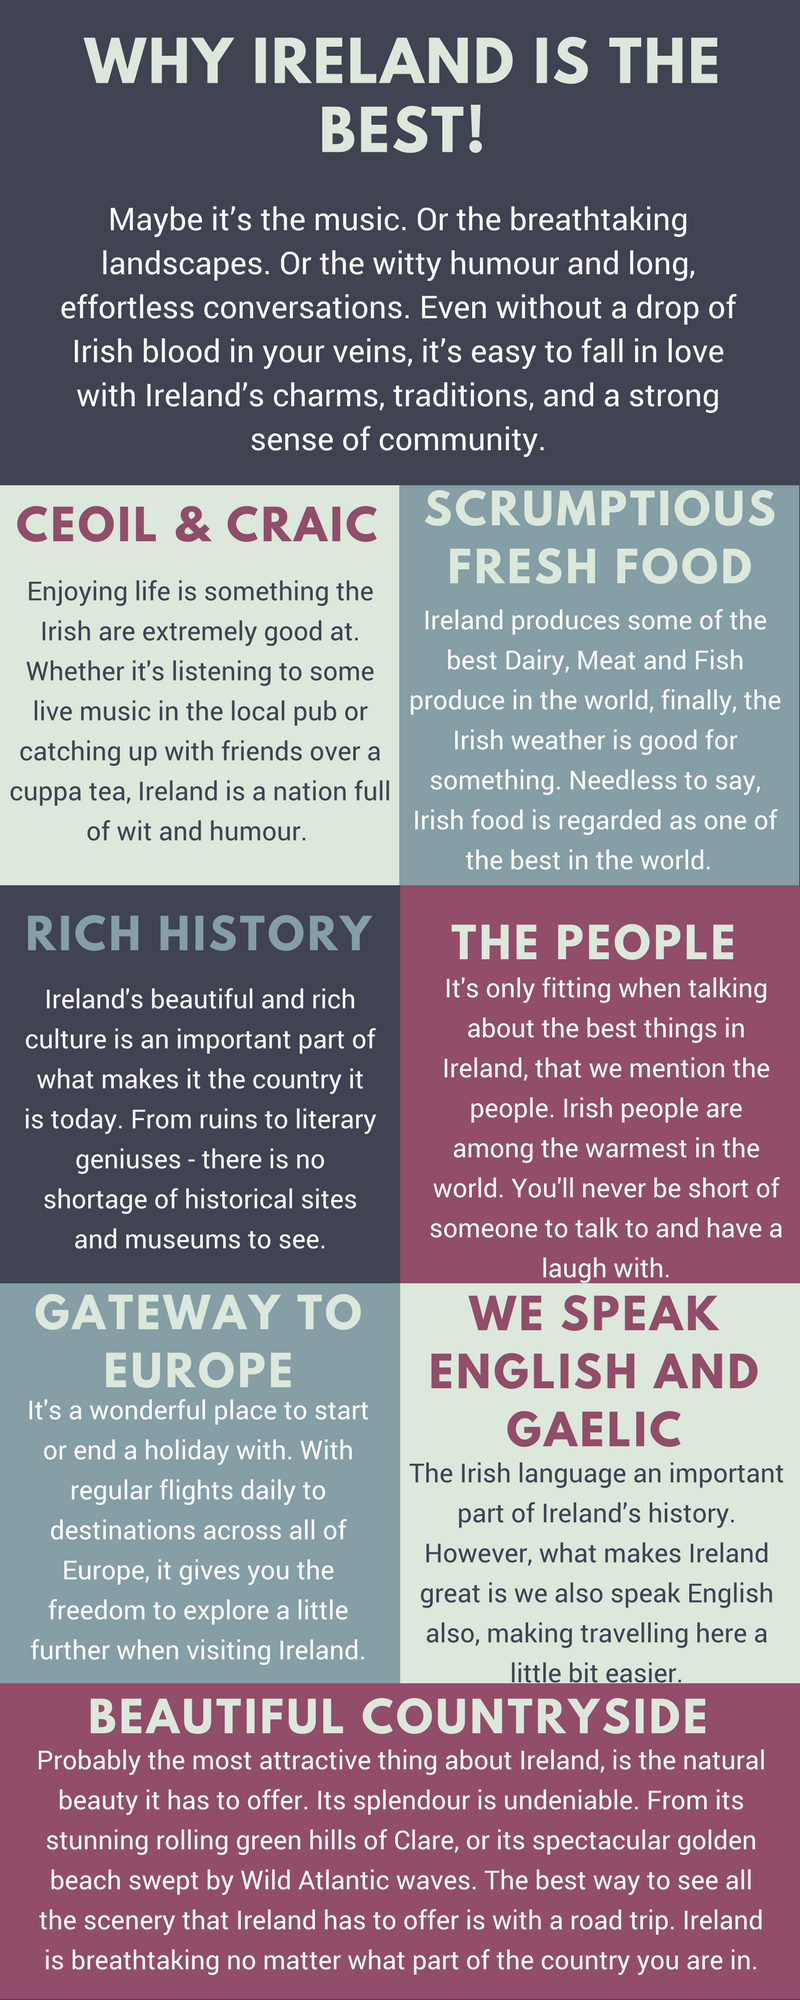 Reasons Ireland is the best infographic